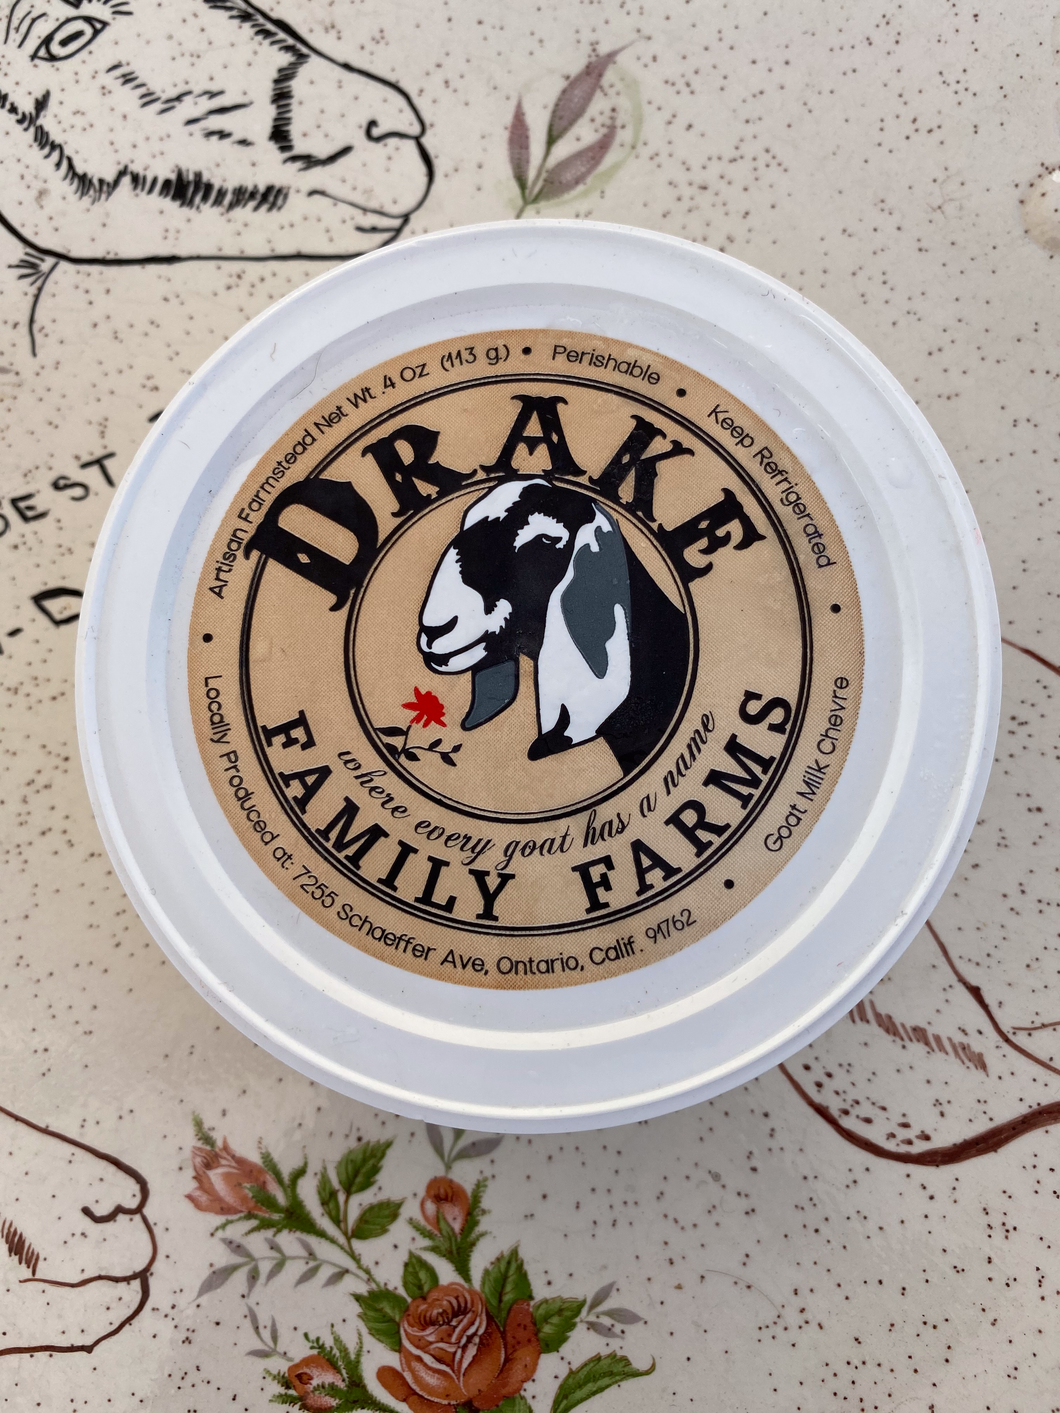 Goat Cheese from Drake Family Farms